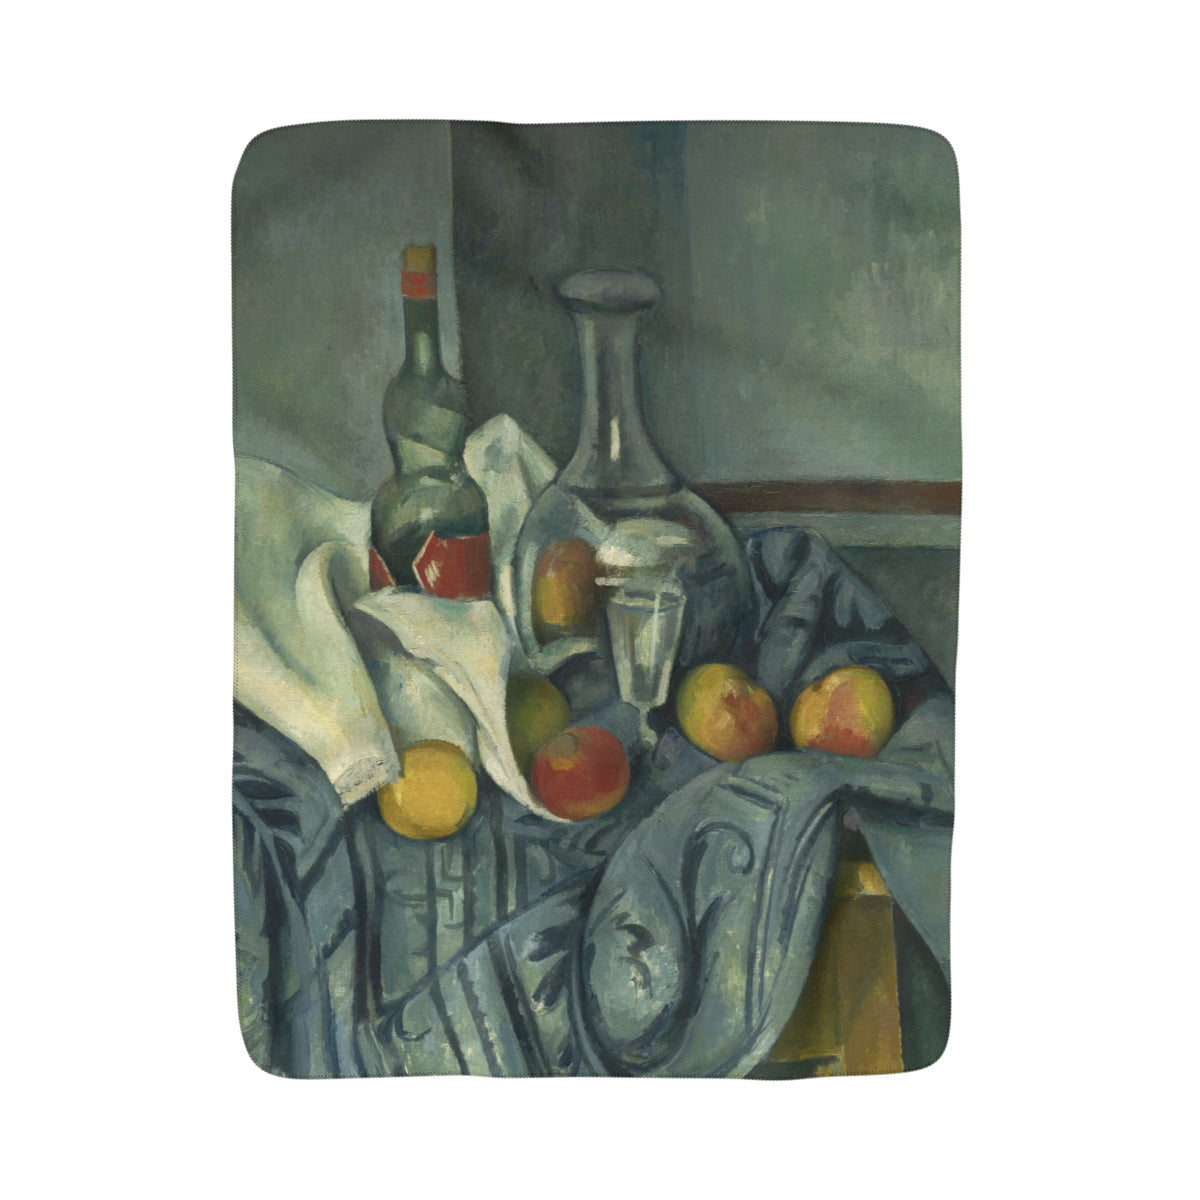 Sherpa Fleece Blanket With Paul Cézanne Artwork - justafive.com